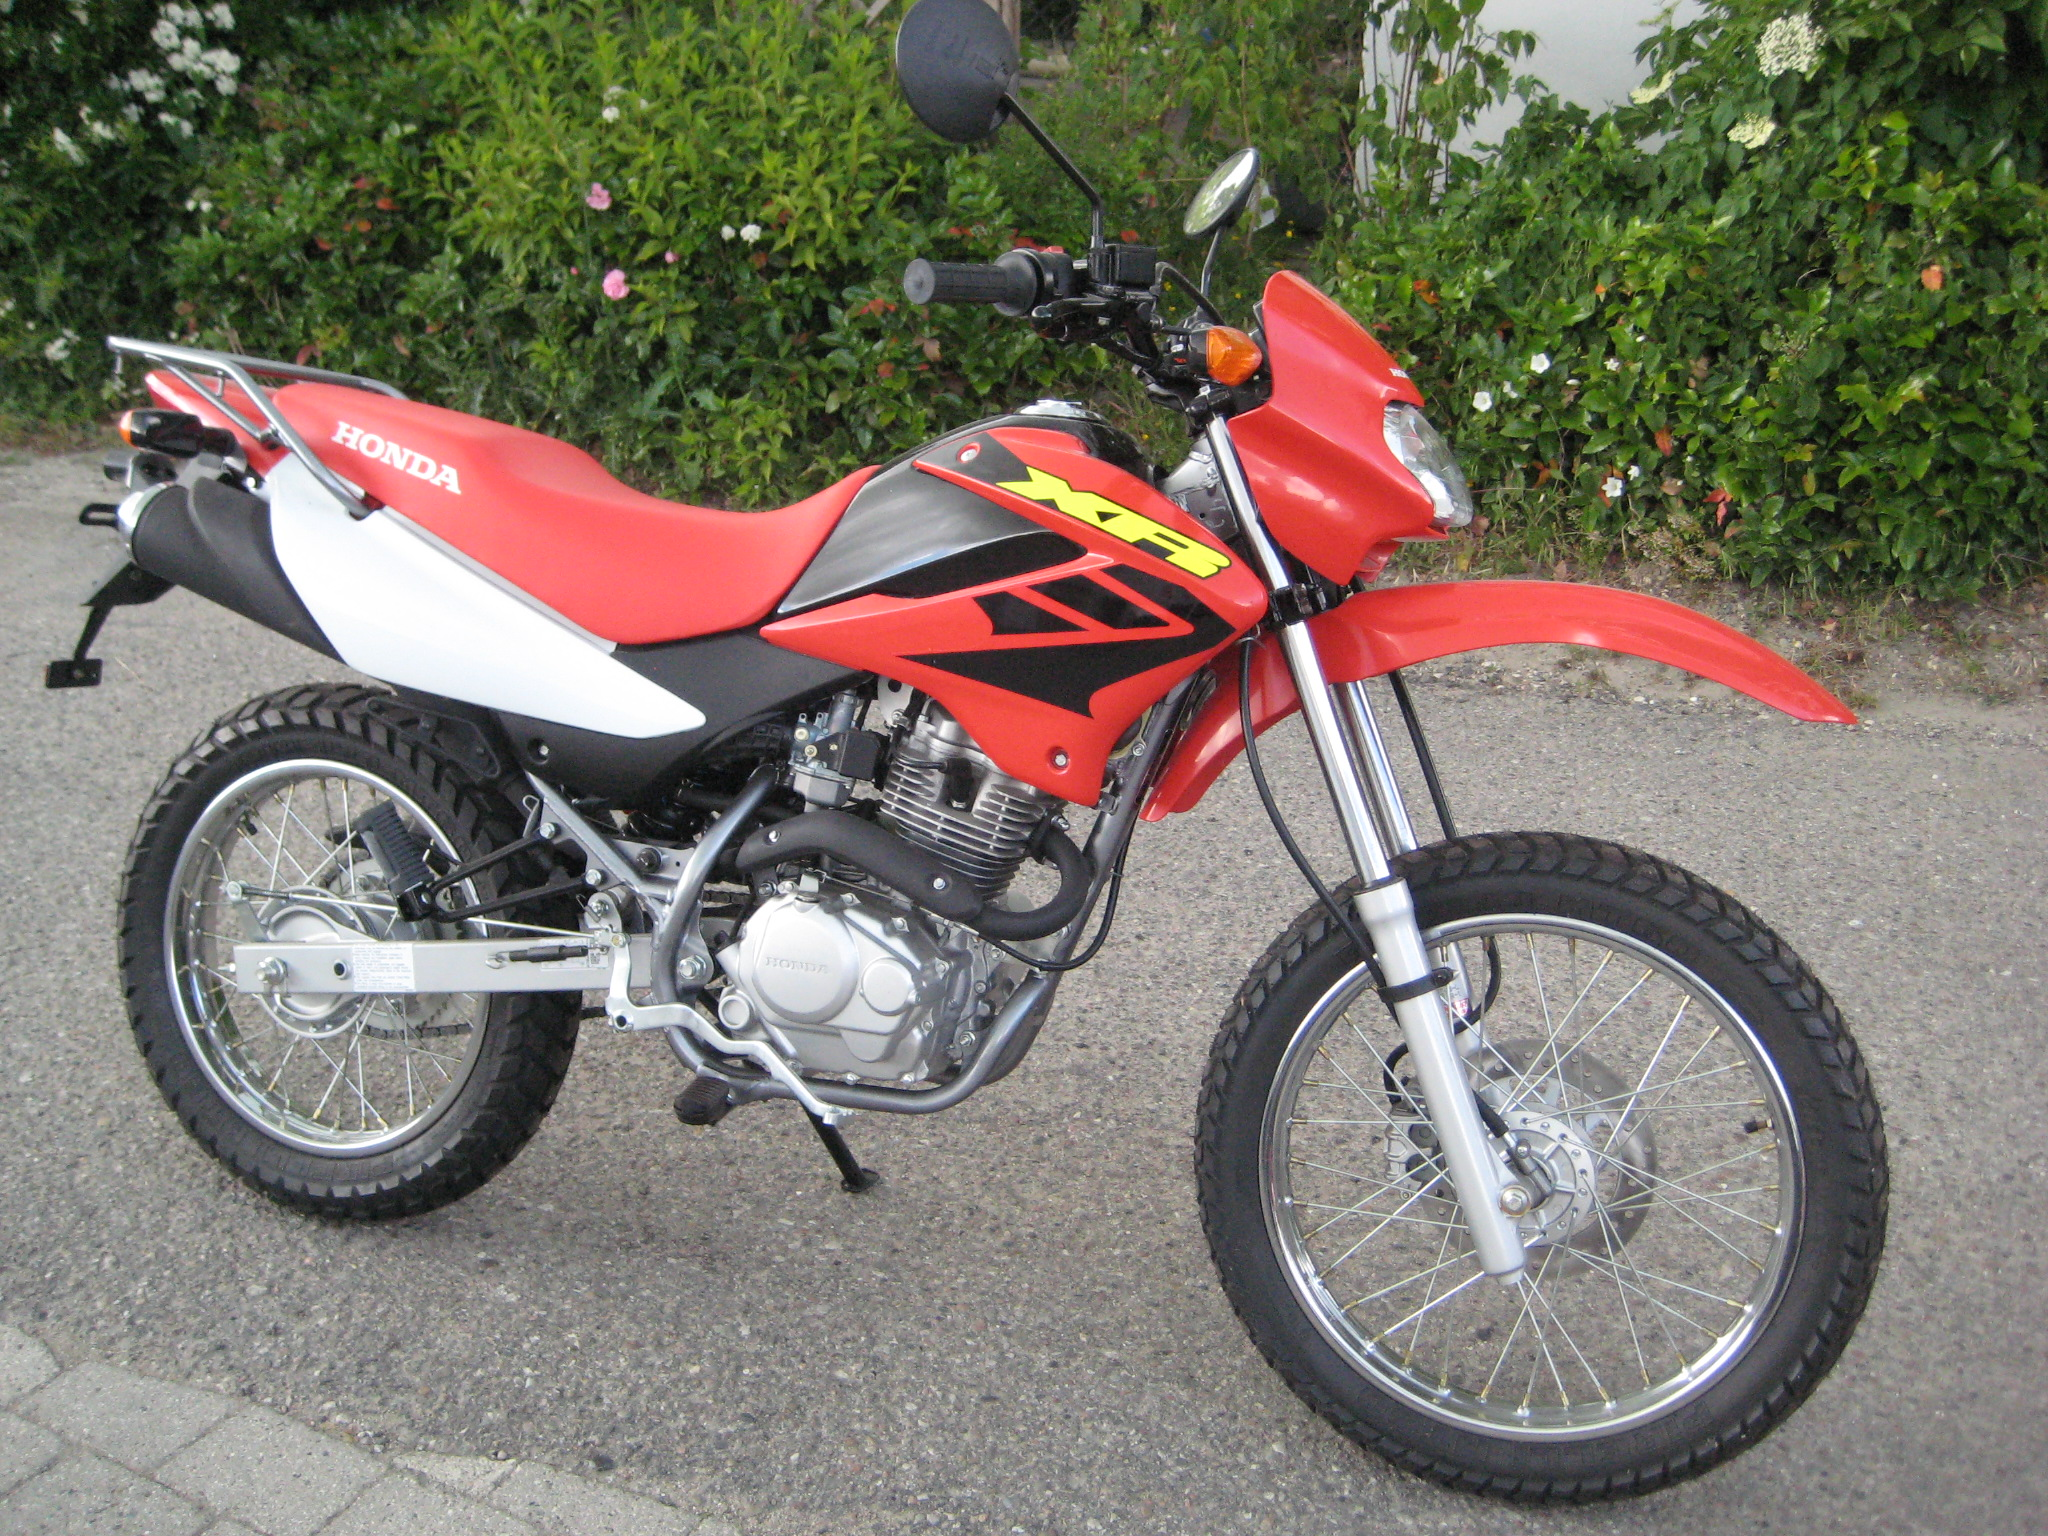 honda xr 125 dirt bike bing images. Black Bedroom Furniture Sets. Home Design Ideas